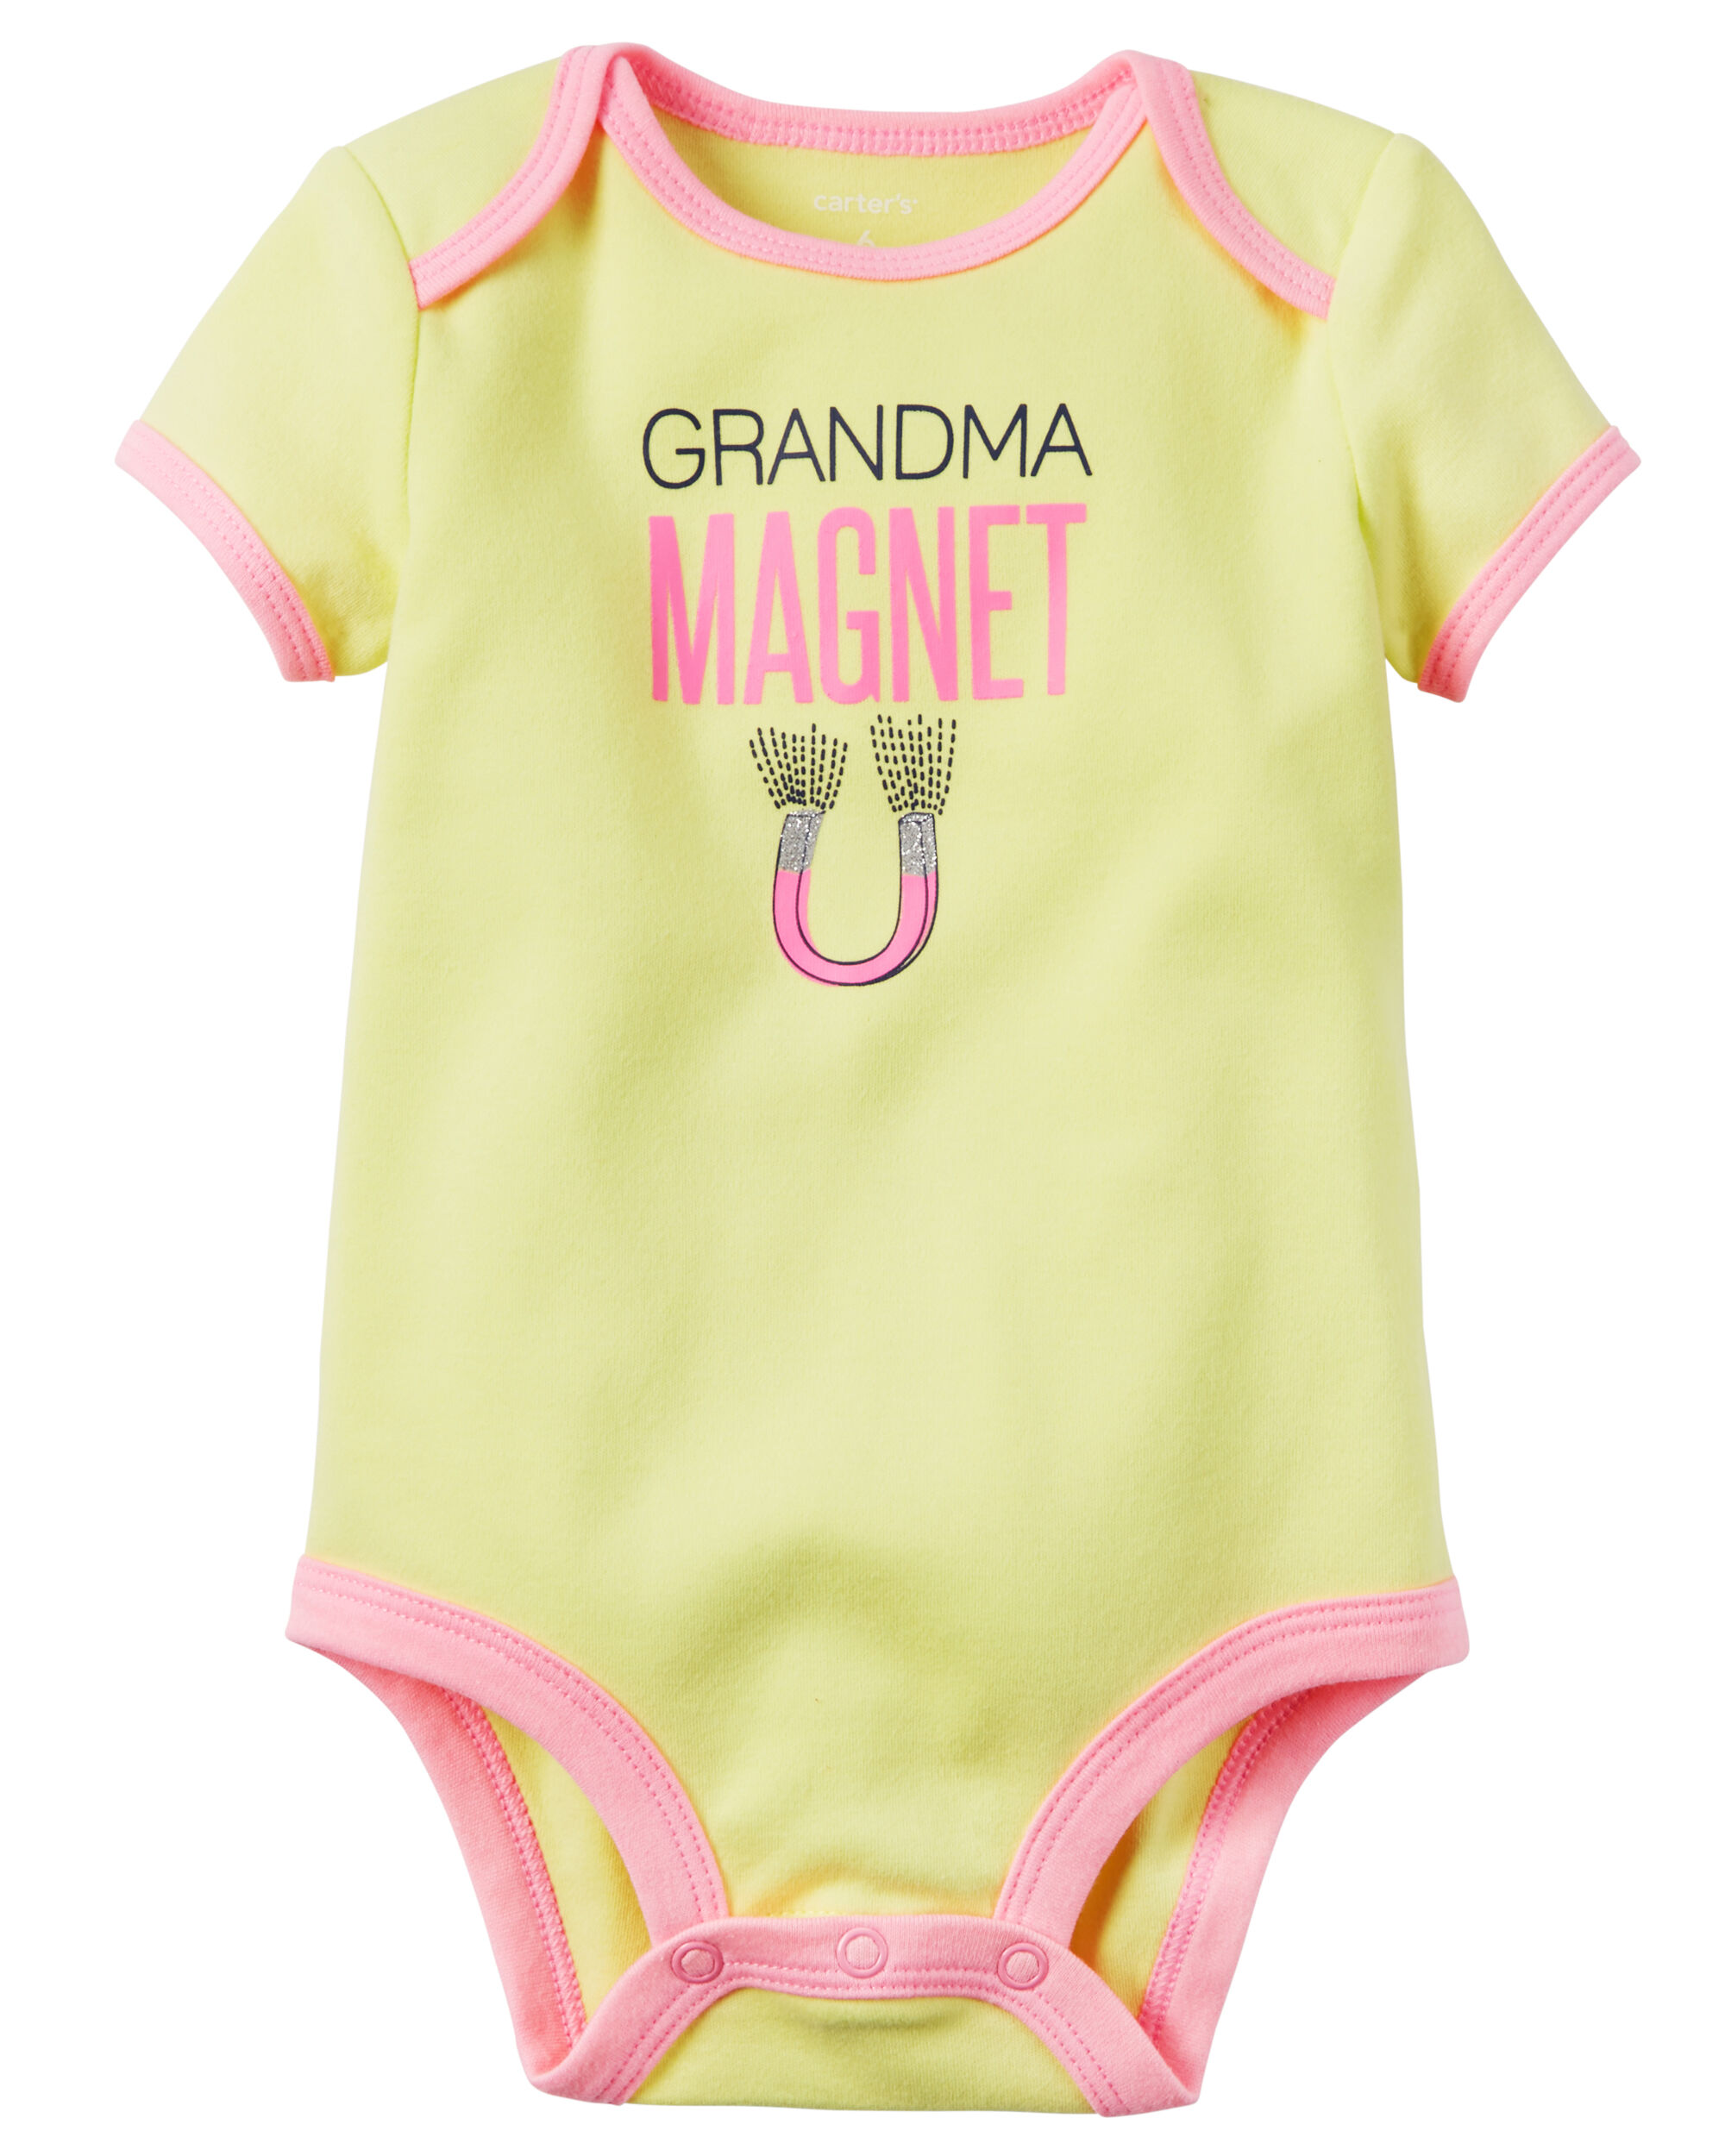 Grandma Magnet Collectible Bodysuit